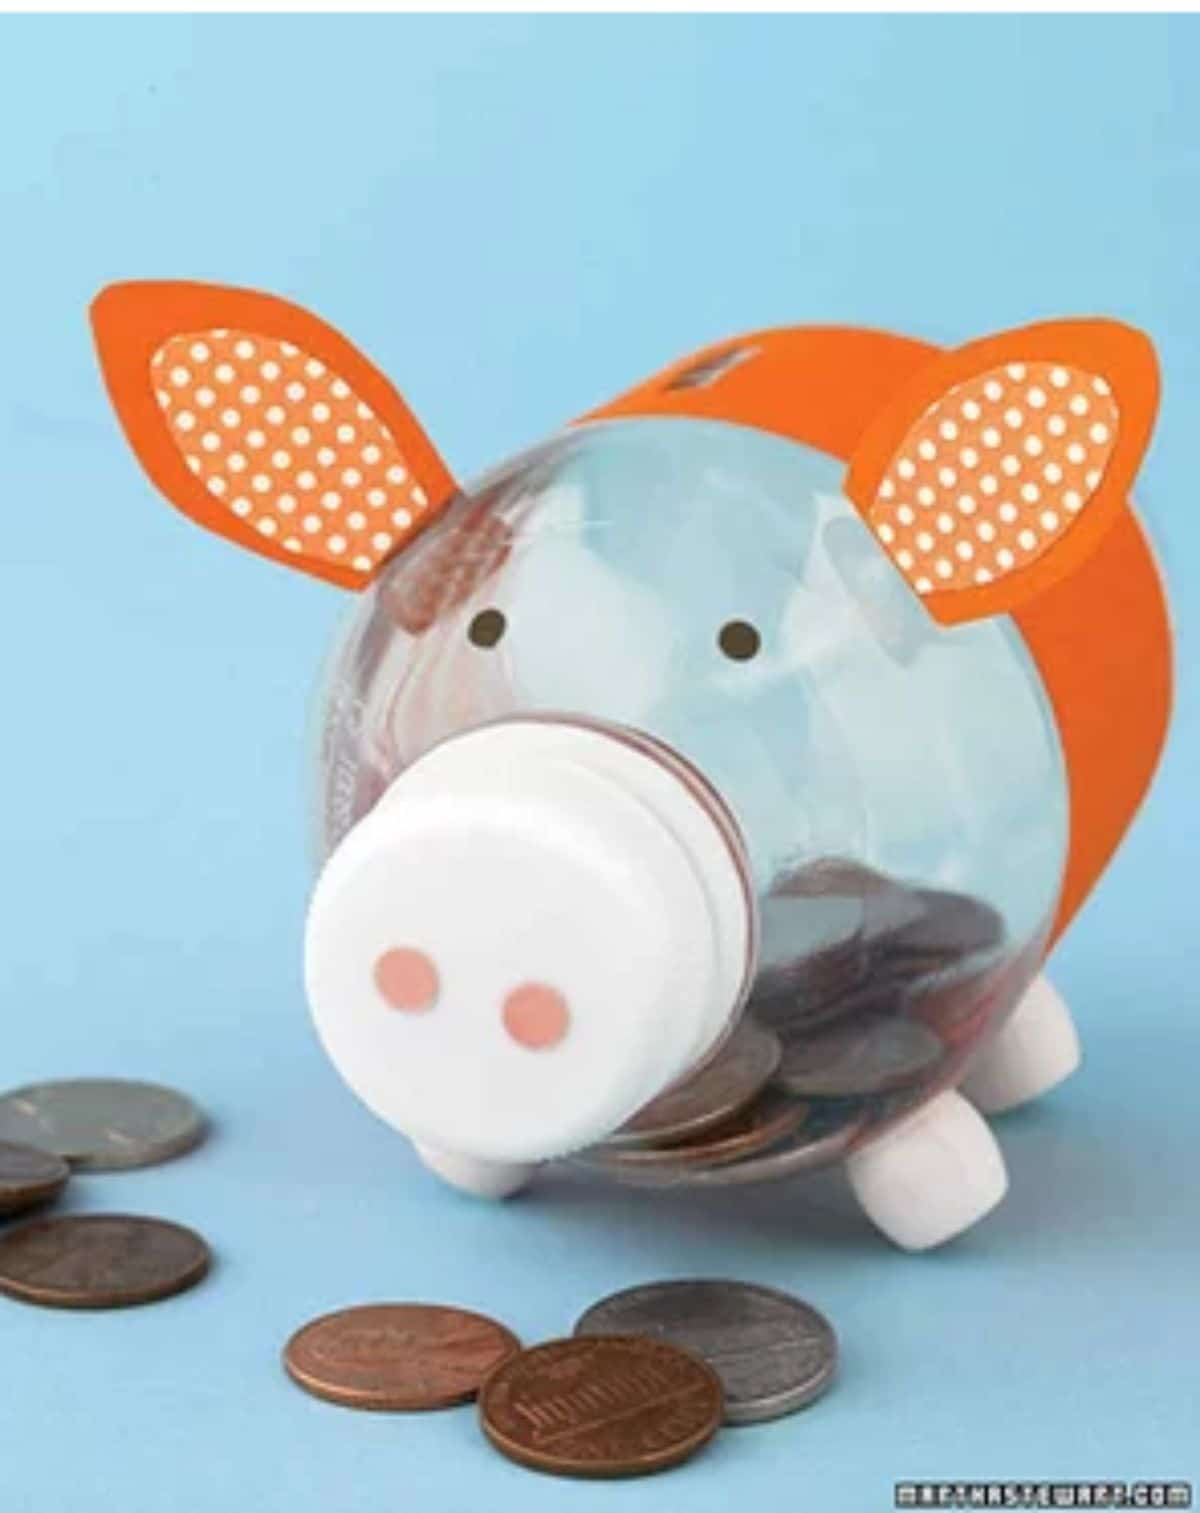 a water bottle decorated with card and stickers to look like a pig. Money is inside the bottle and scattered in front of it